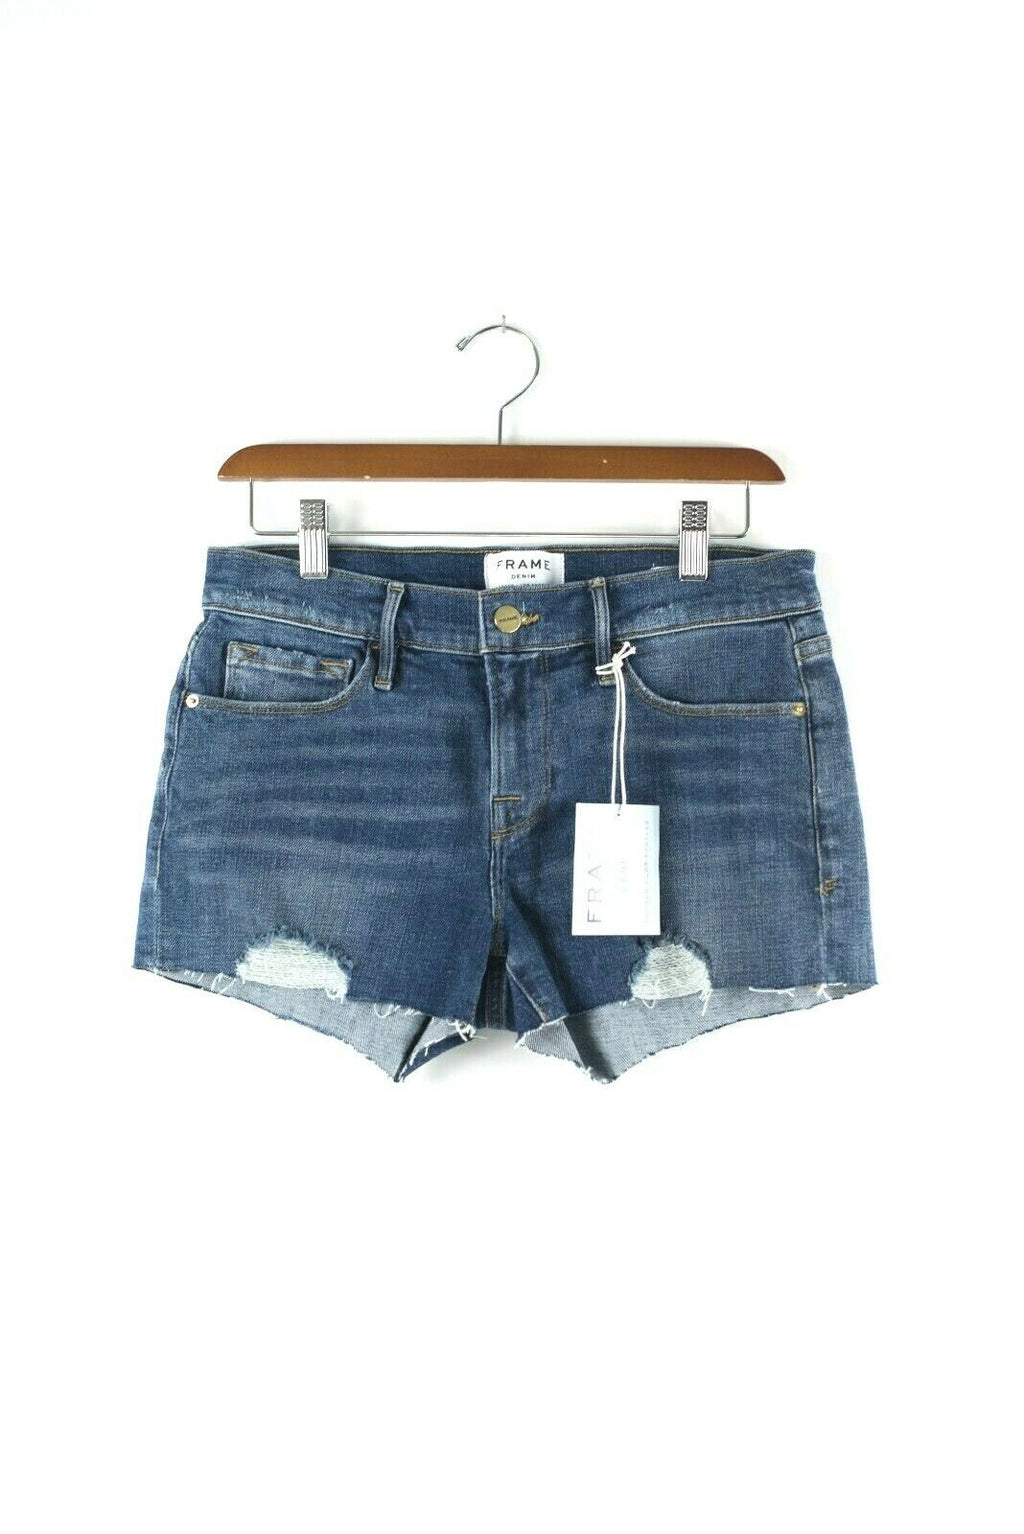 Frame Denim Womens Size 26 Blue Shorts Le Cutoff $185 Raw Hem High Rise Jean NWT